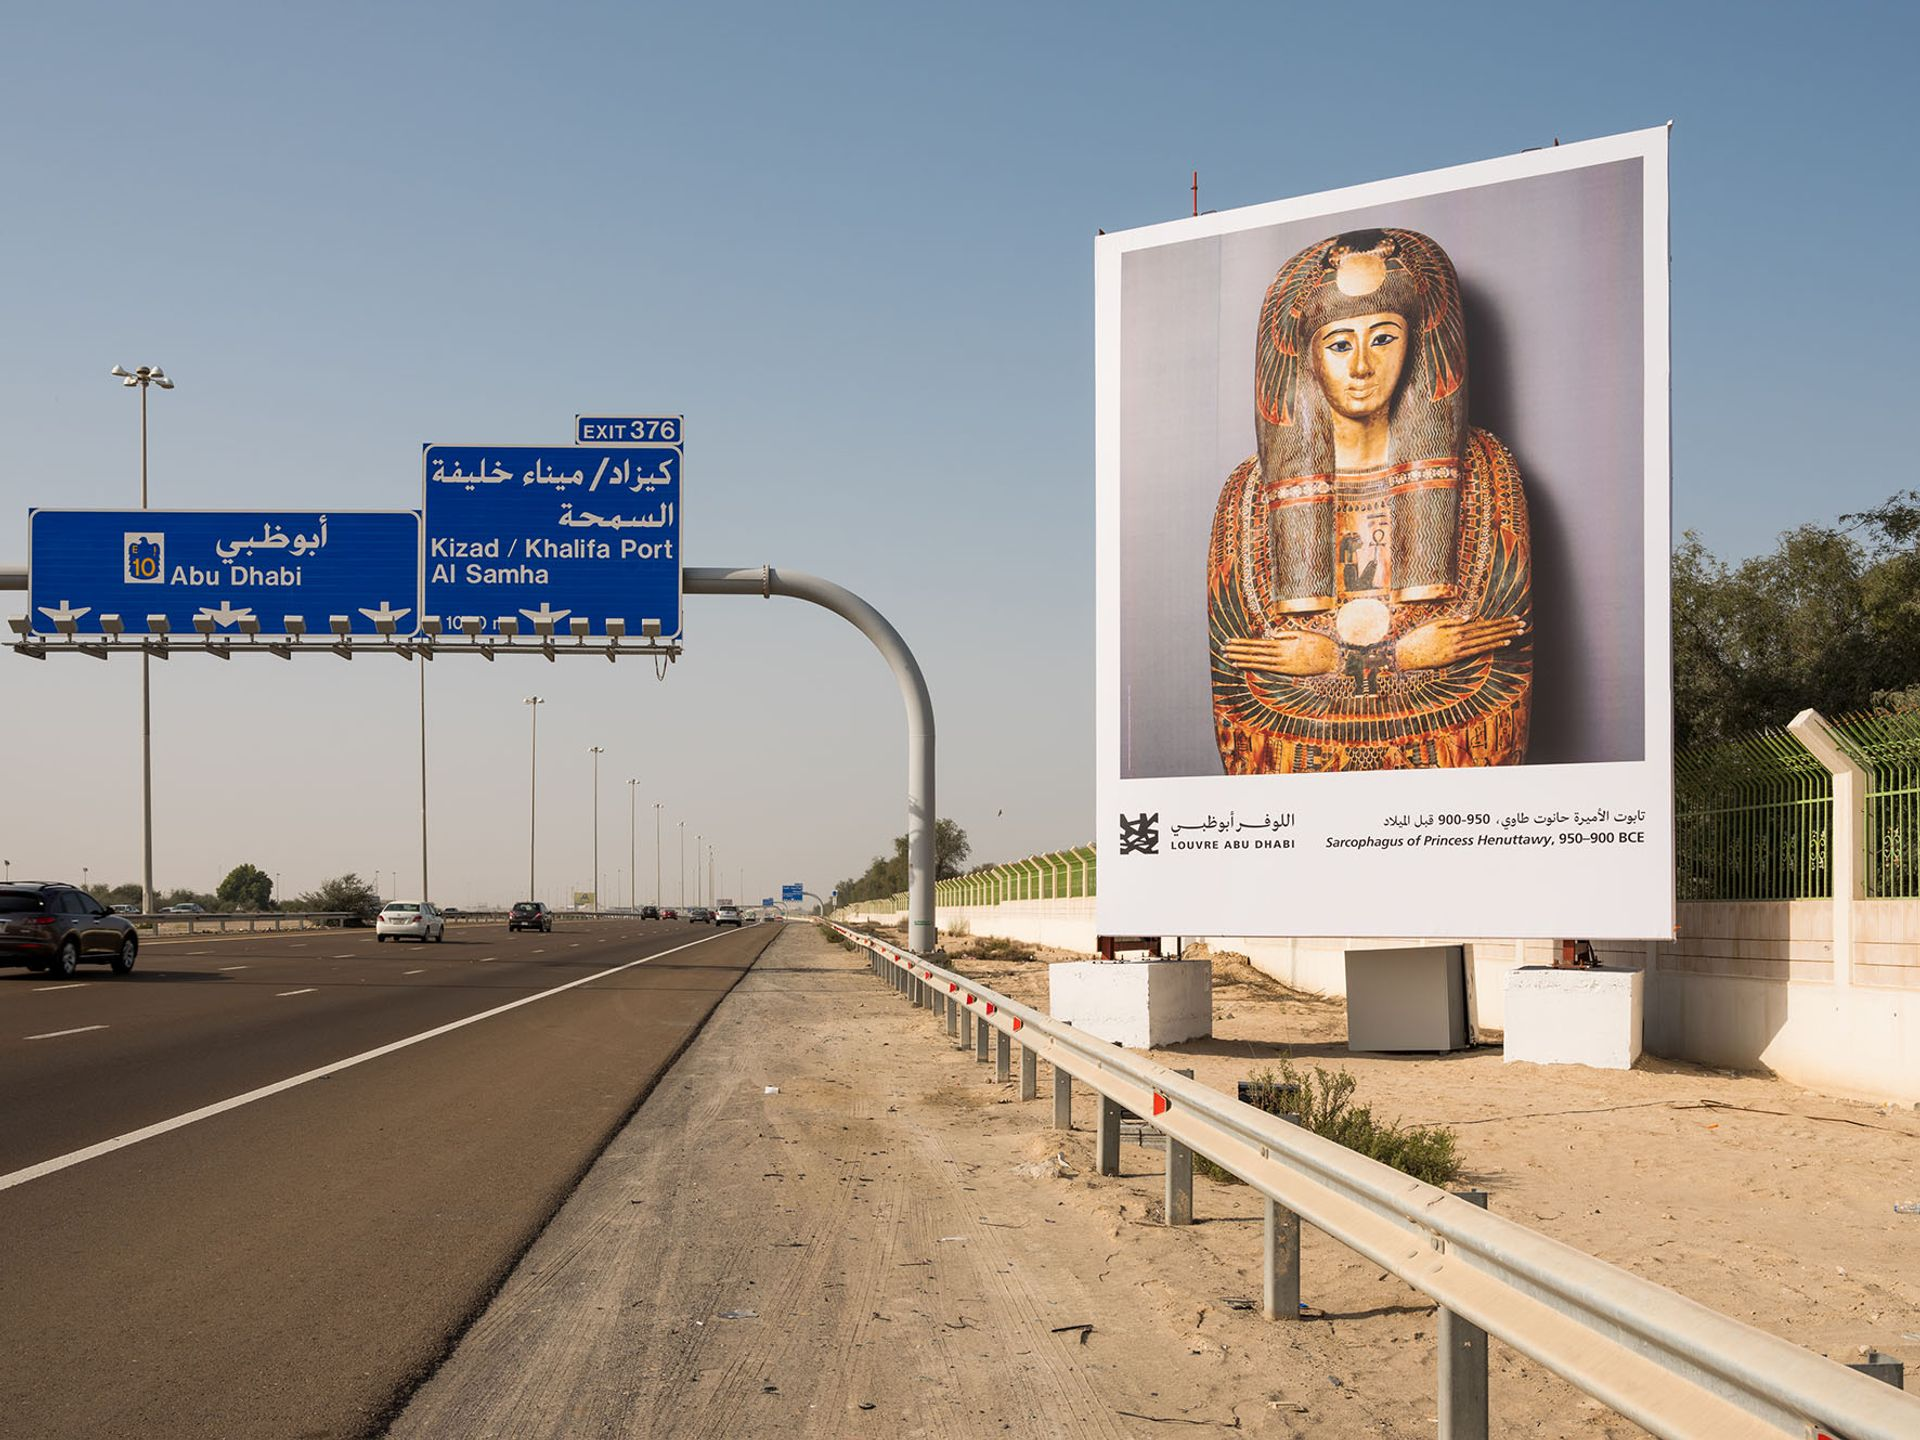 One of the billboards depicting an Ancient Egyptian sarcophagus on the Sheikh Zayed Road Louvre Abu Dhabi / Thierry Ollivier